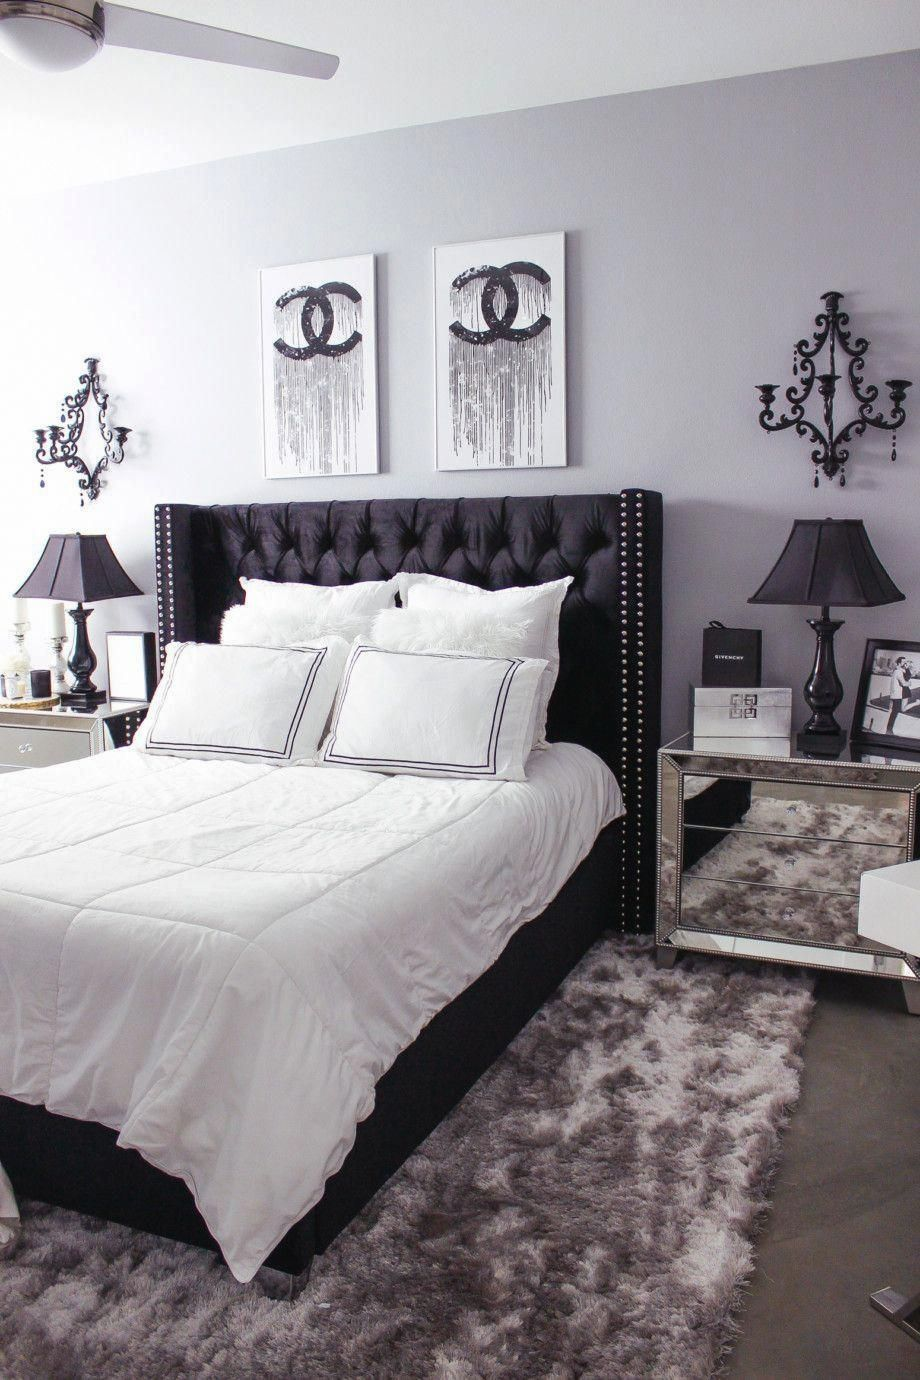 12 Minimalist Bedroom Decorating Ideas In 2020 White Bedroom Decor Black White Bedrooms White Bedroom